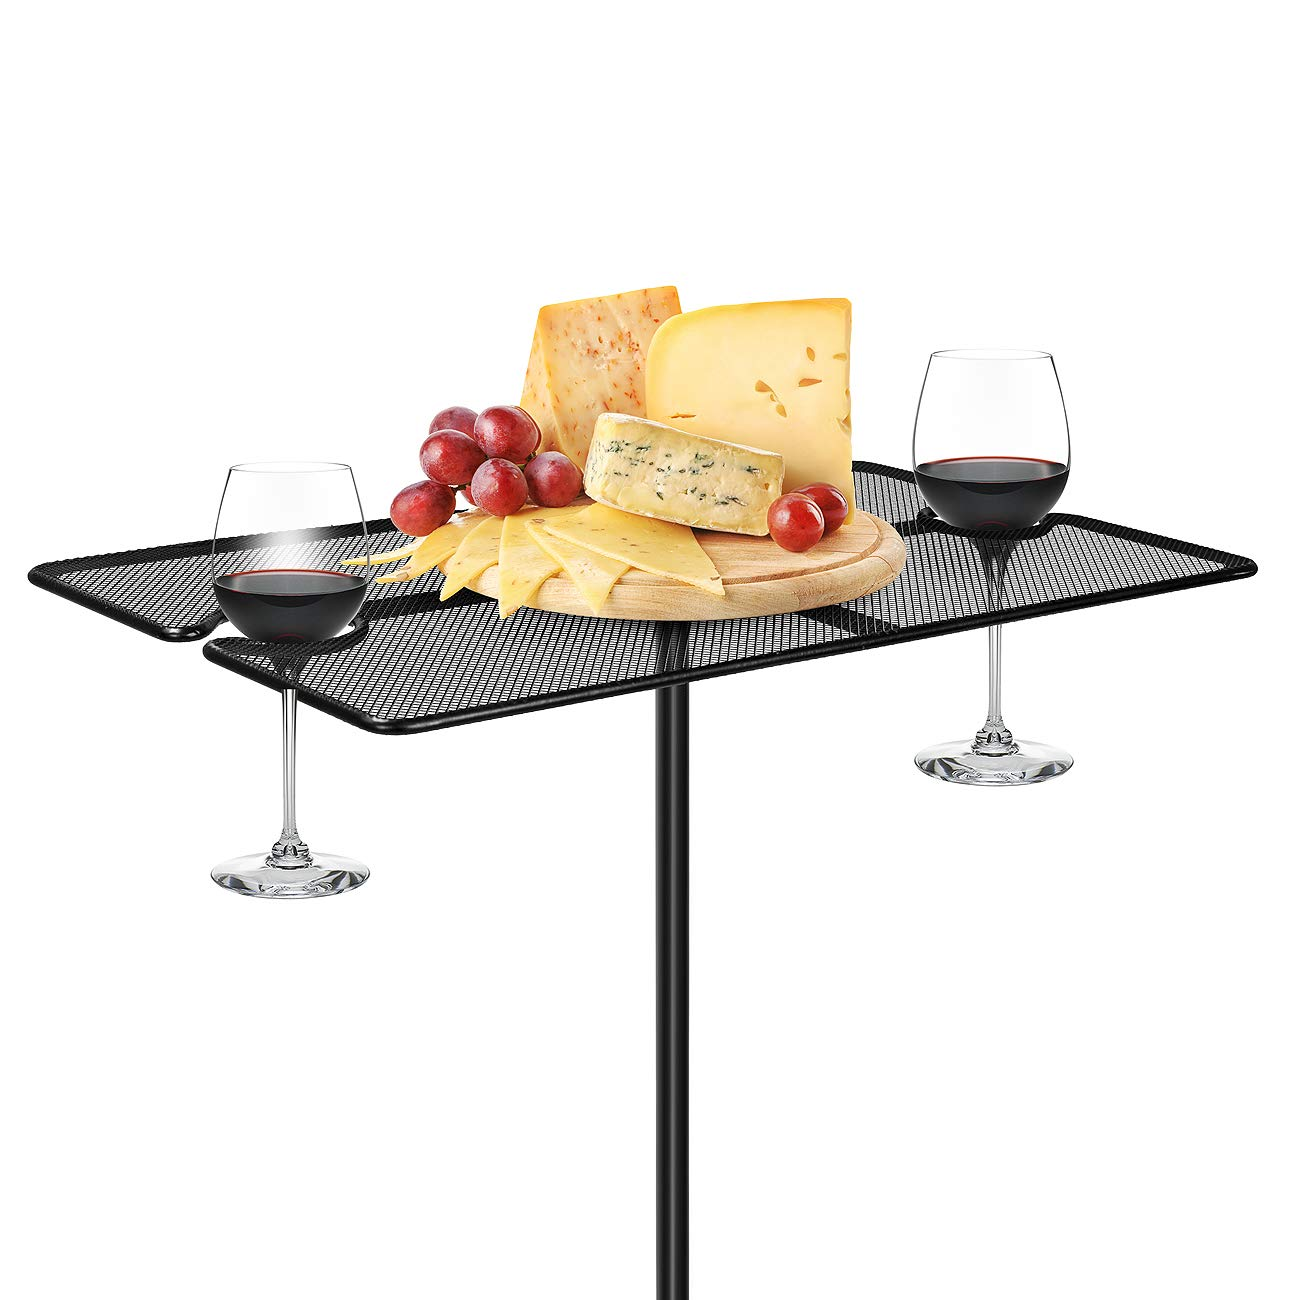 Sorbus Picnic Wine Table Stake, Portable Foldable Picnic Table, Great Drink Holder Stakes for Park, Backyard, Beach Tables for Sand by Sorbus